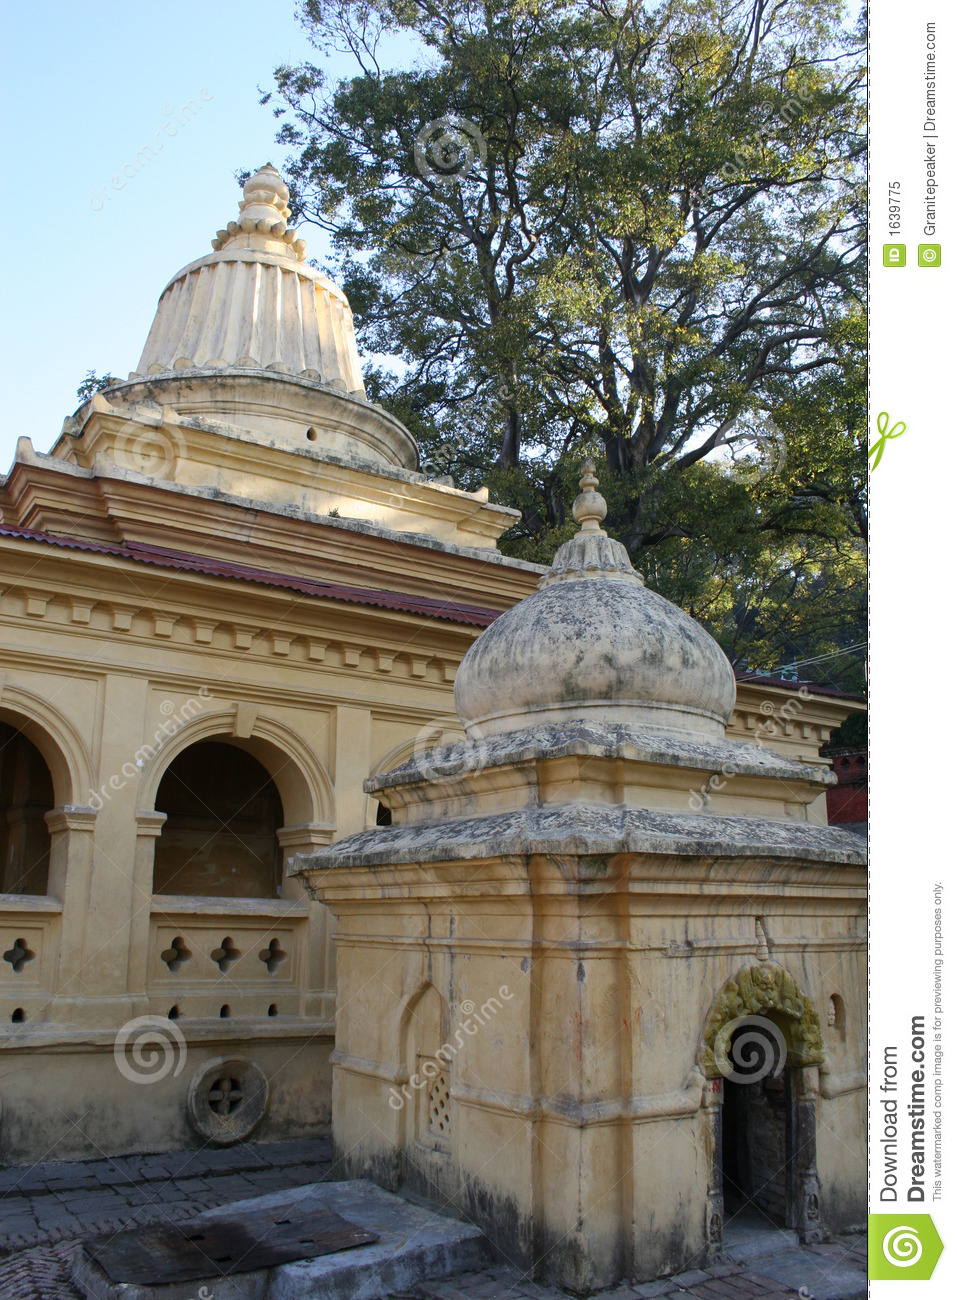 pashupatinath temple free - photo #1